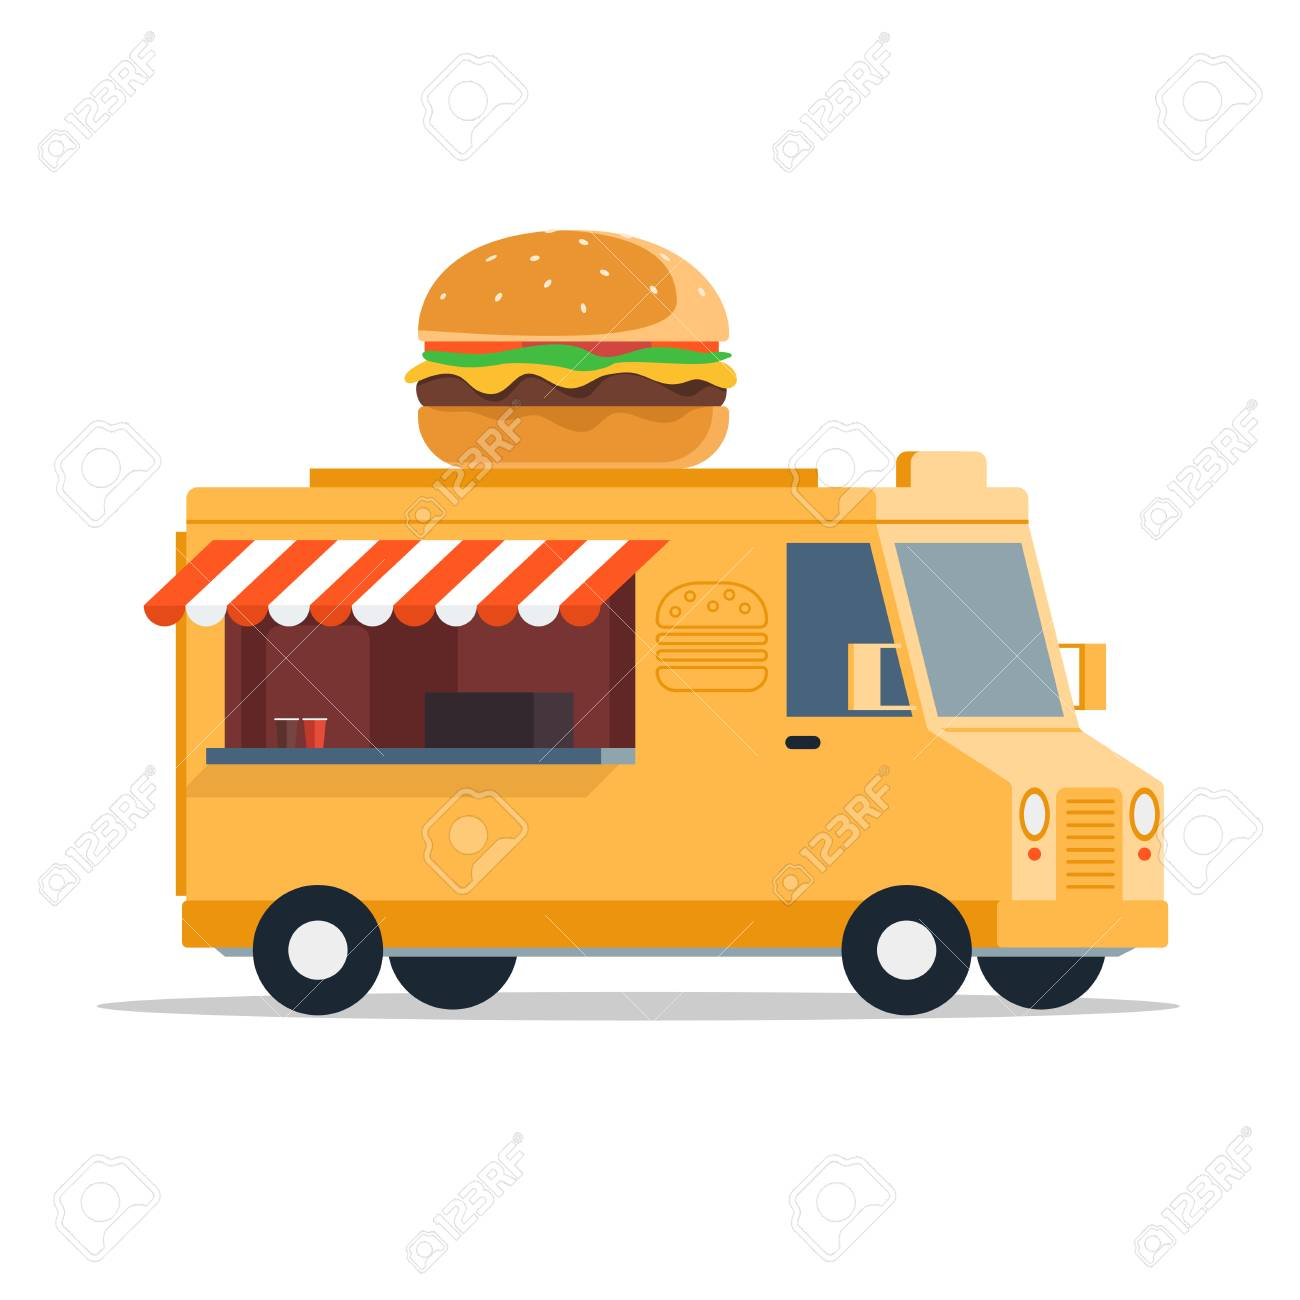 84636702-food-truck-fast-food-delivery-mobile-food-car-street-food-van-isolated-on-white-vector-illustration-.jpg